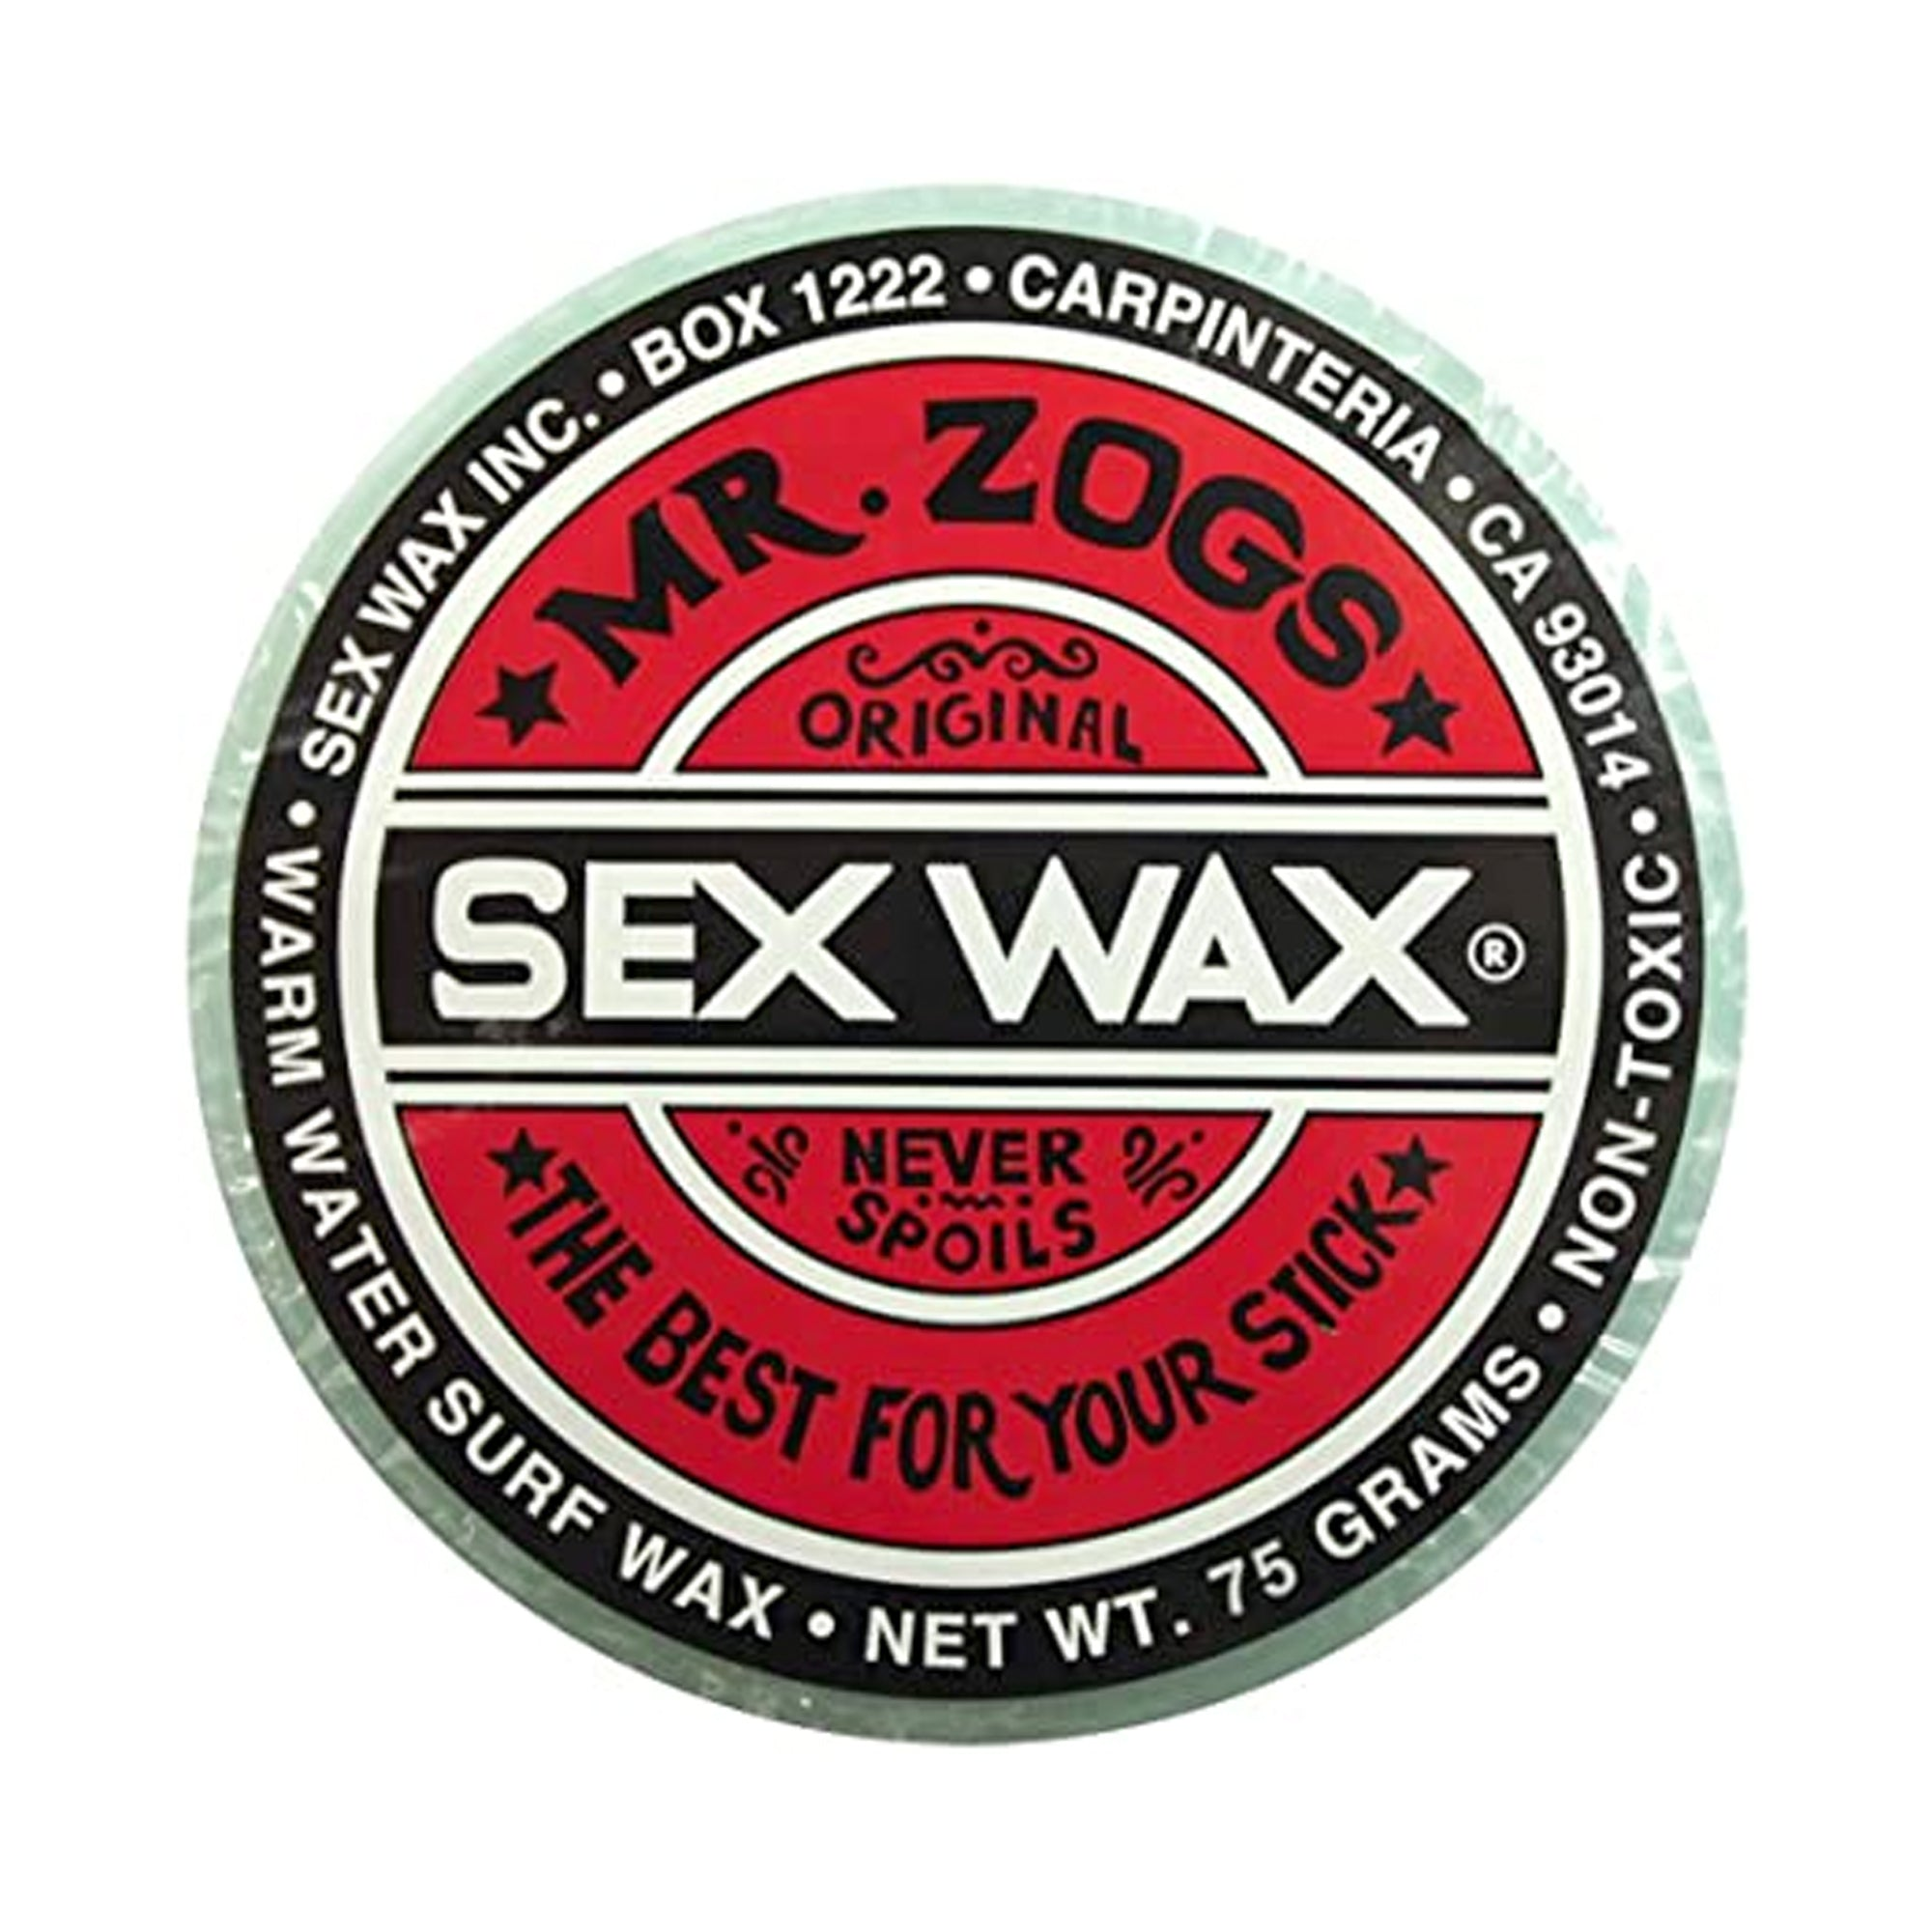 Sex Wax Original Surf Wax - Warm